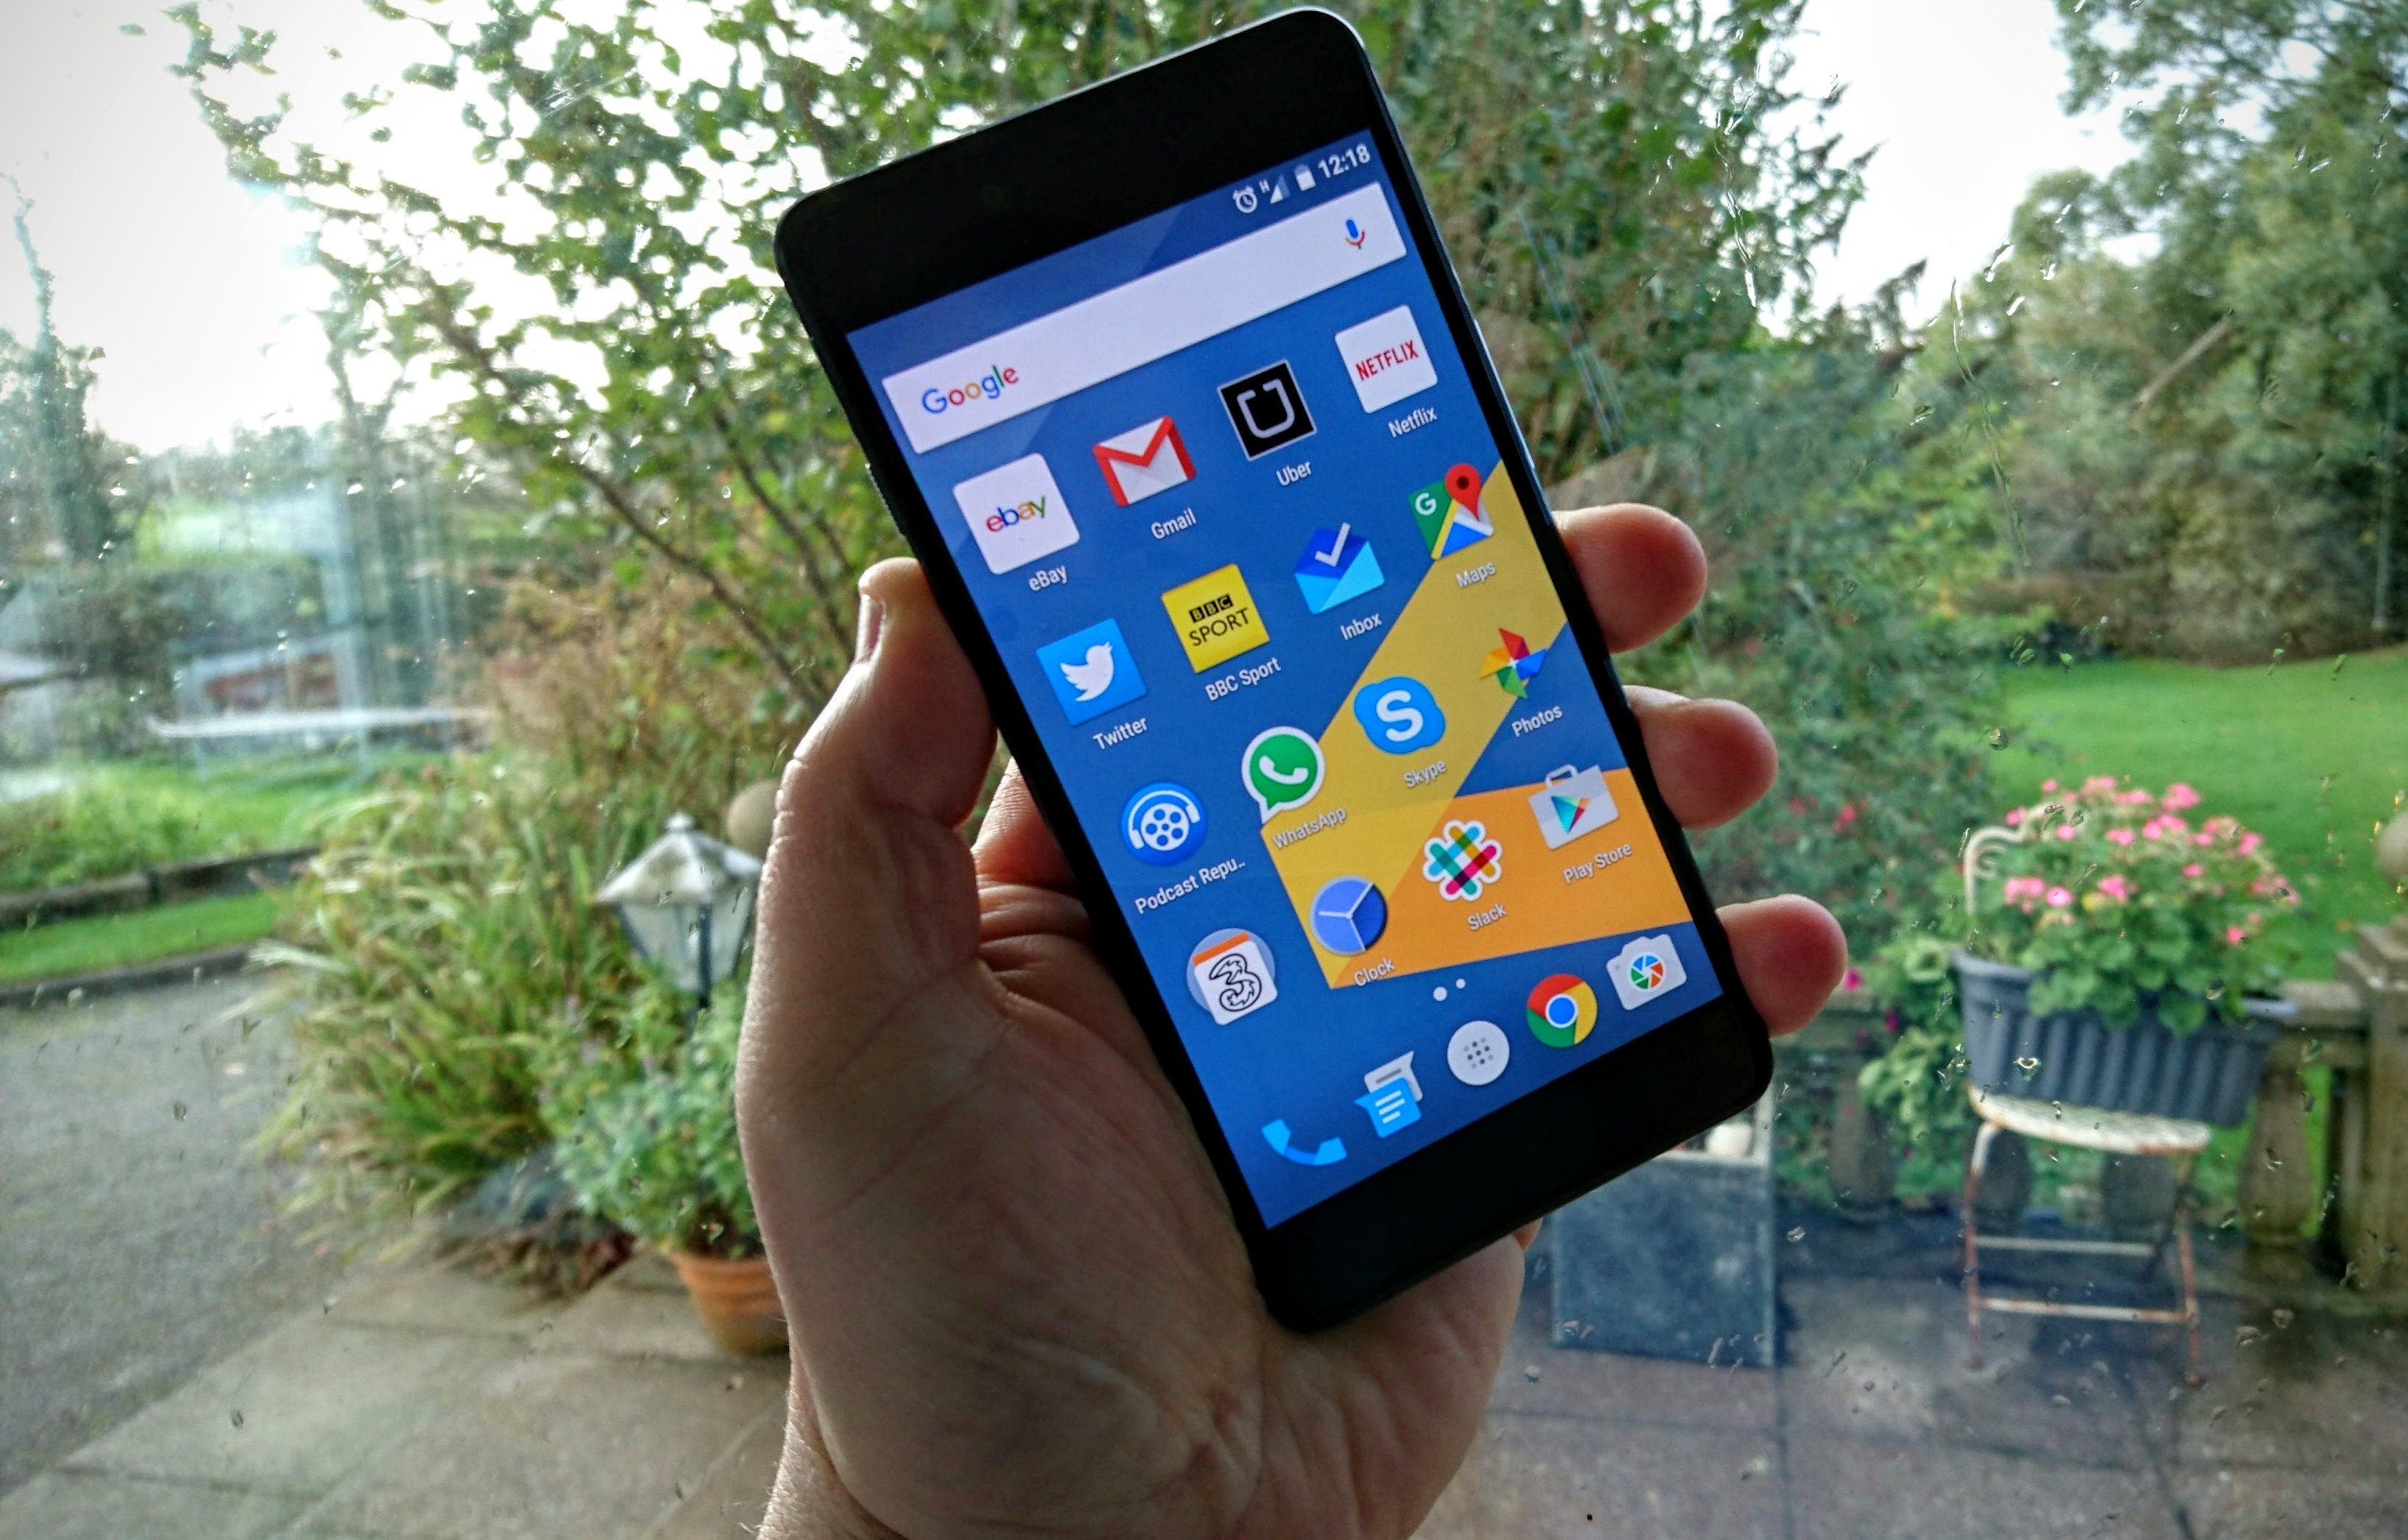 OnePlus X Review: HD Display, Battery Life And Solid ...